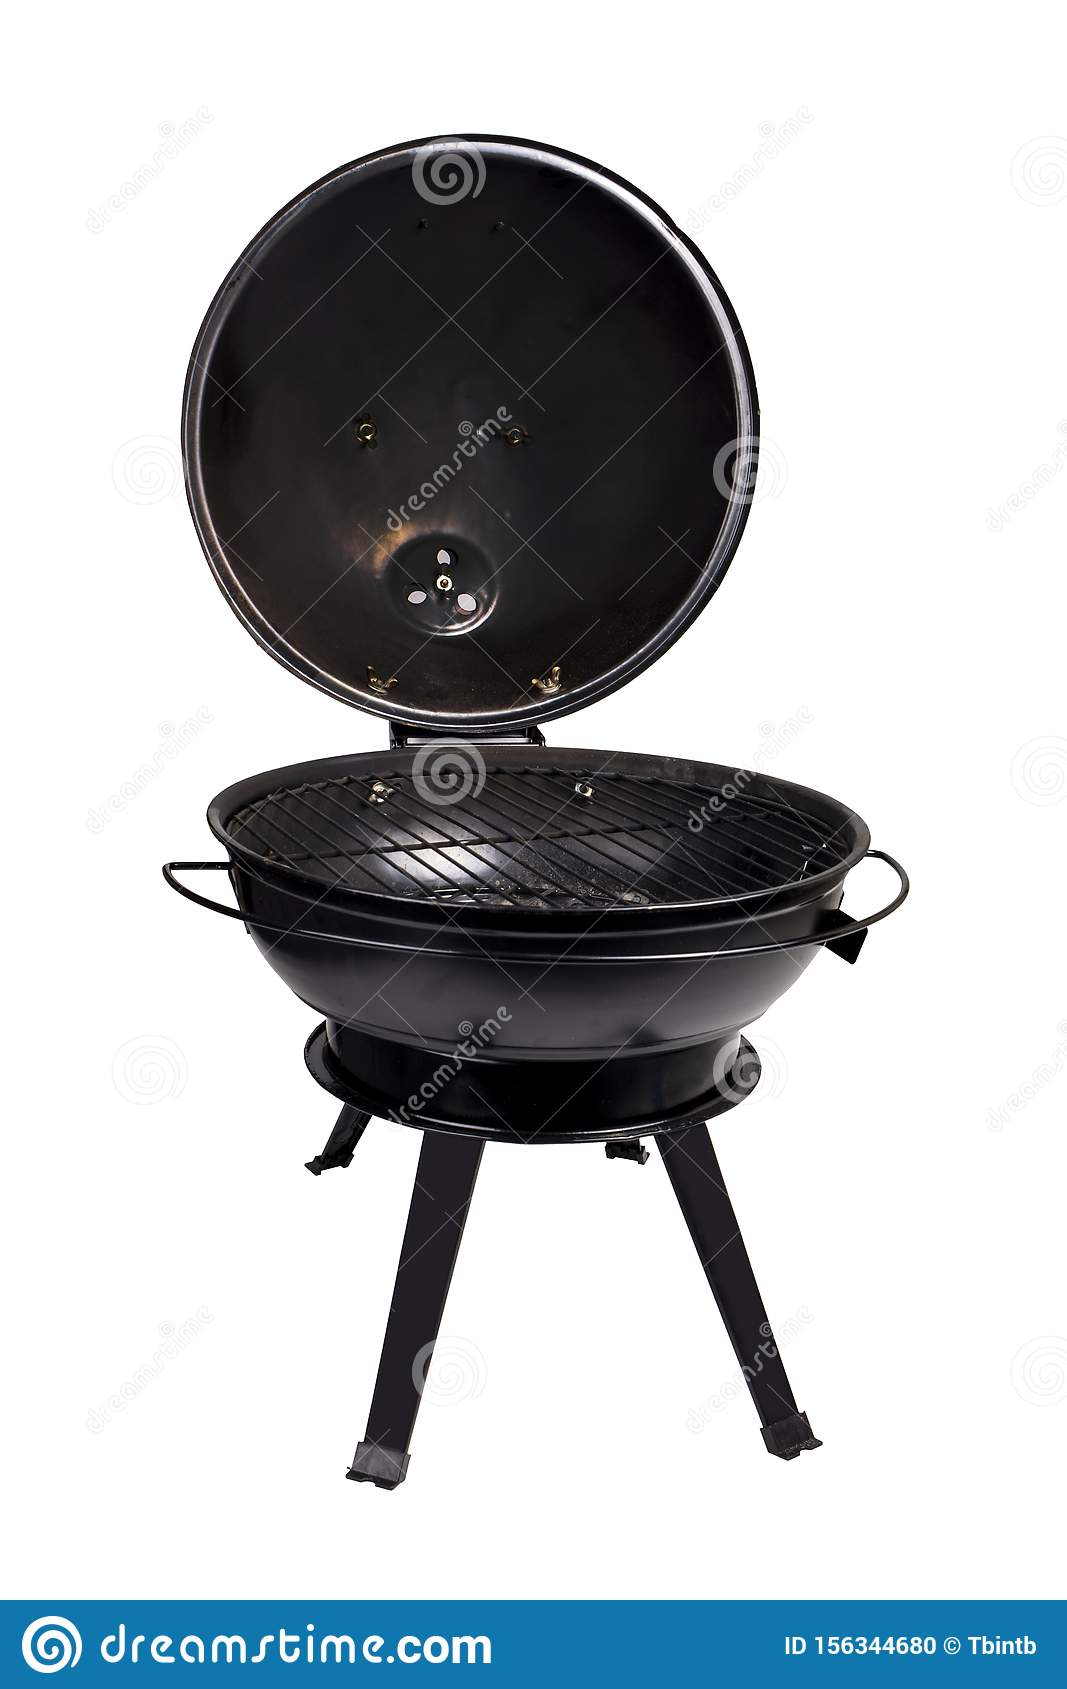 Portable Bbq Grill Stock Photo Image Of Portable Grill 156344680